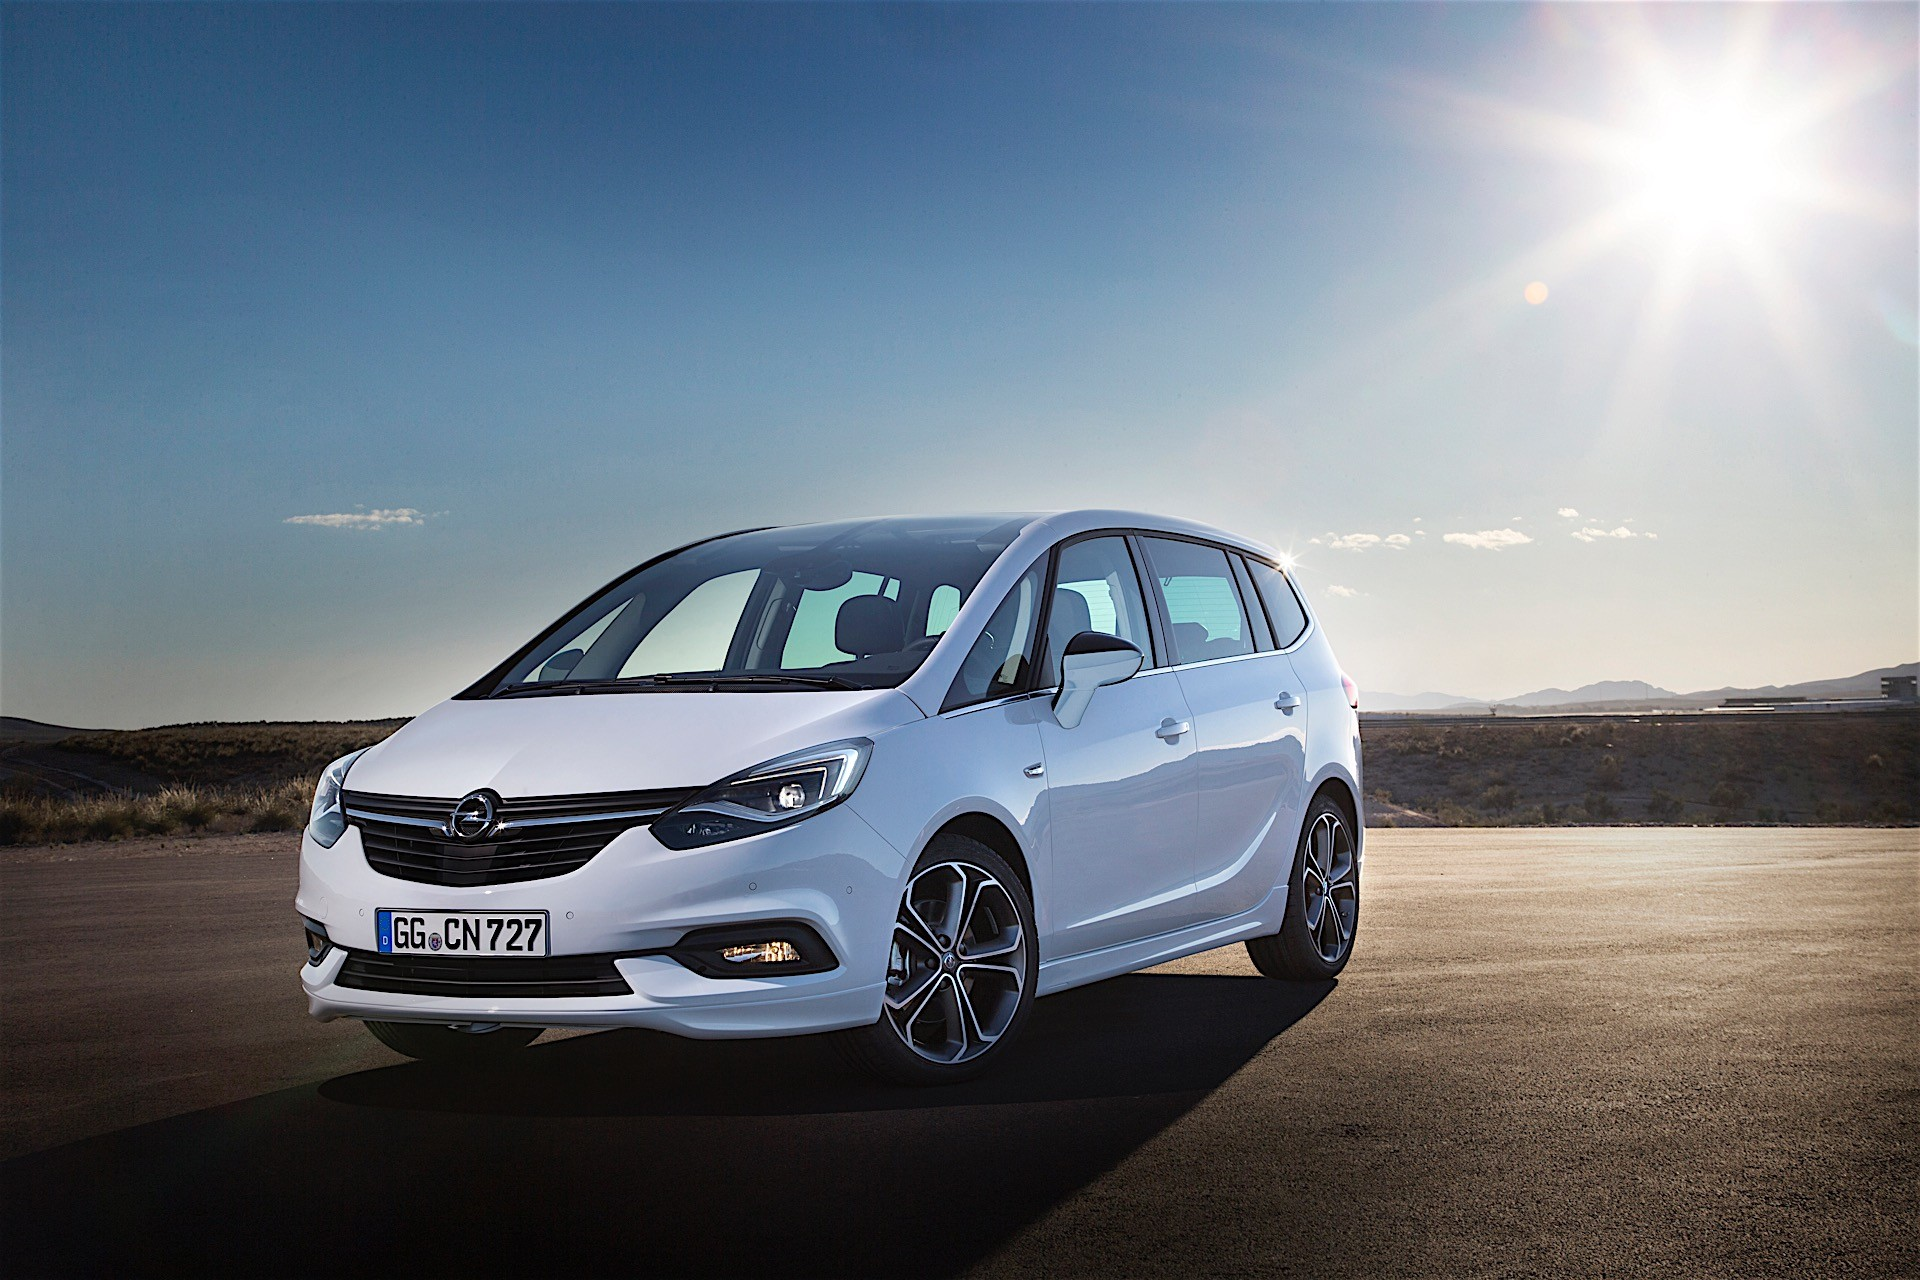 opel zafira tourer with 200 hp turbo sounds absurdly awesome autoevolution. Black Bedroom Furniture Sets. Home Design Ideas